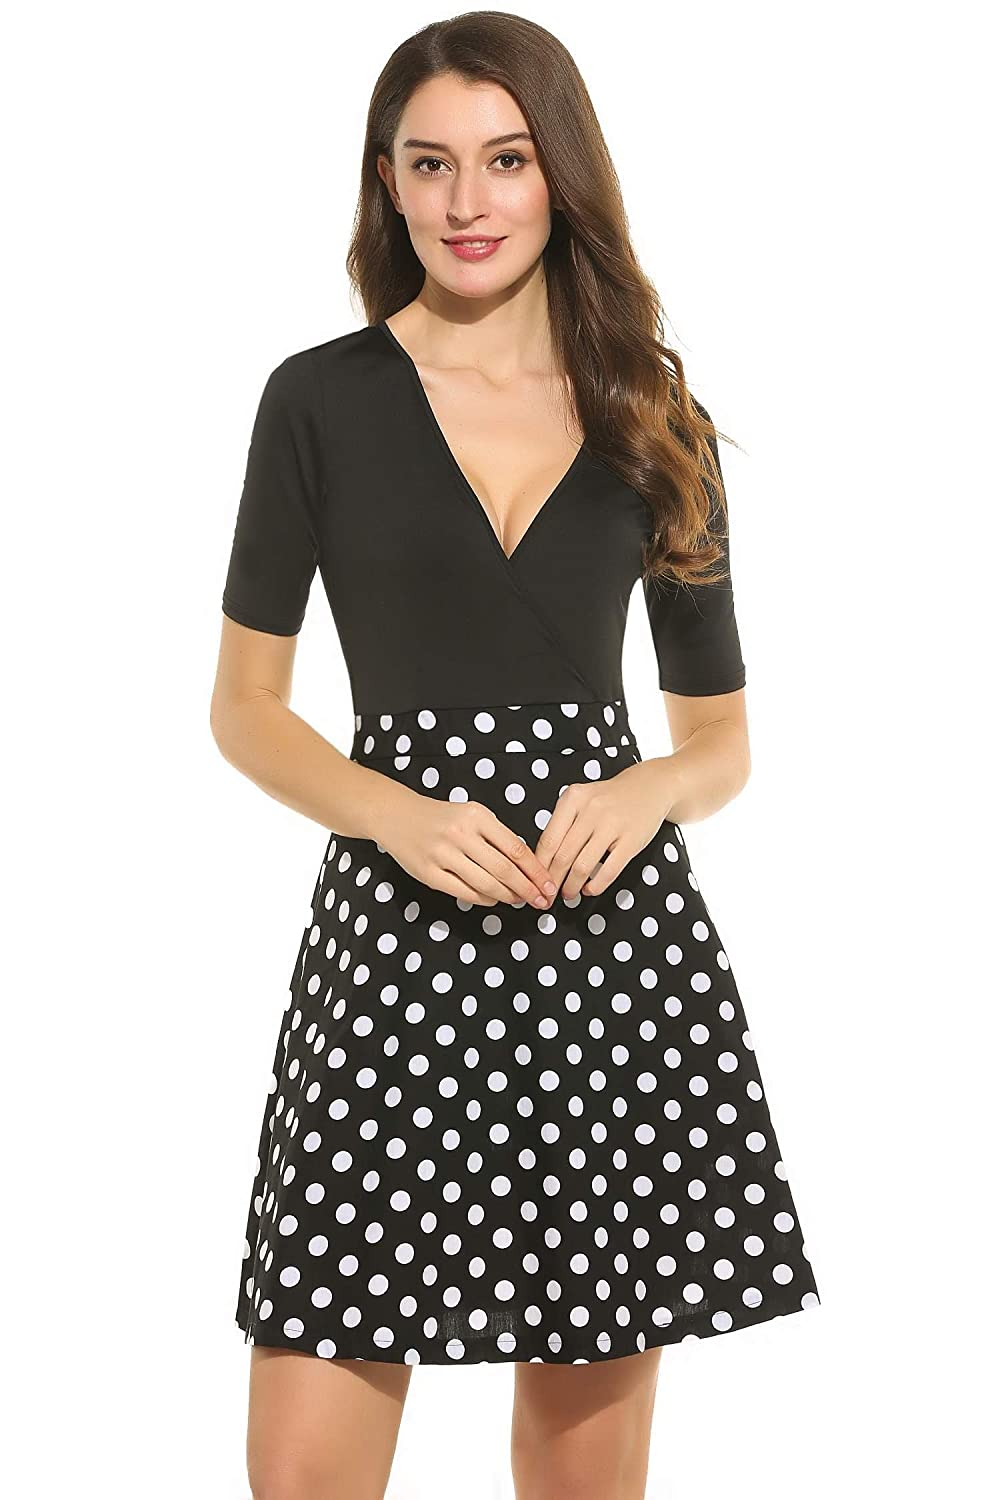 35ef87f309 Bikeias Women Deep V-Neck Half Sleeve Polka Dots Cocktail Party Skater Dress  at Amazon Women's Clothing store: